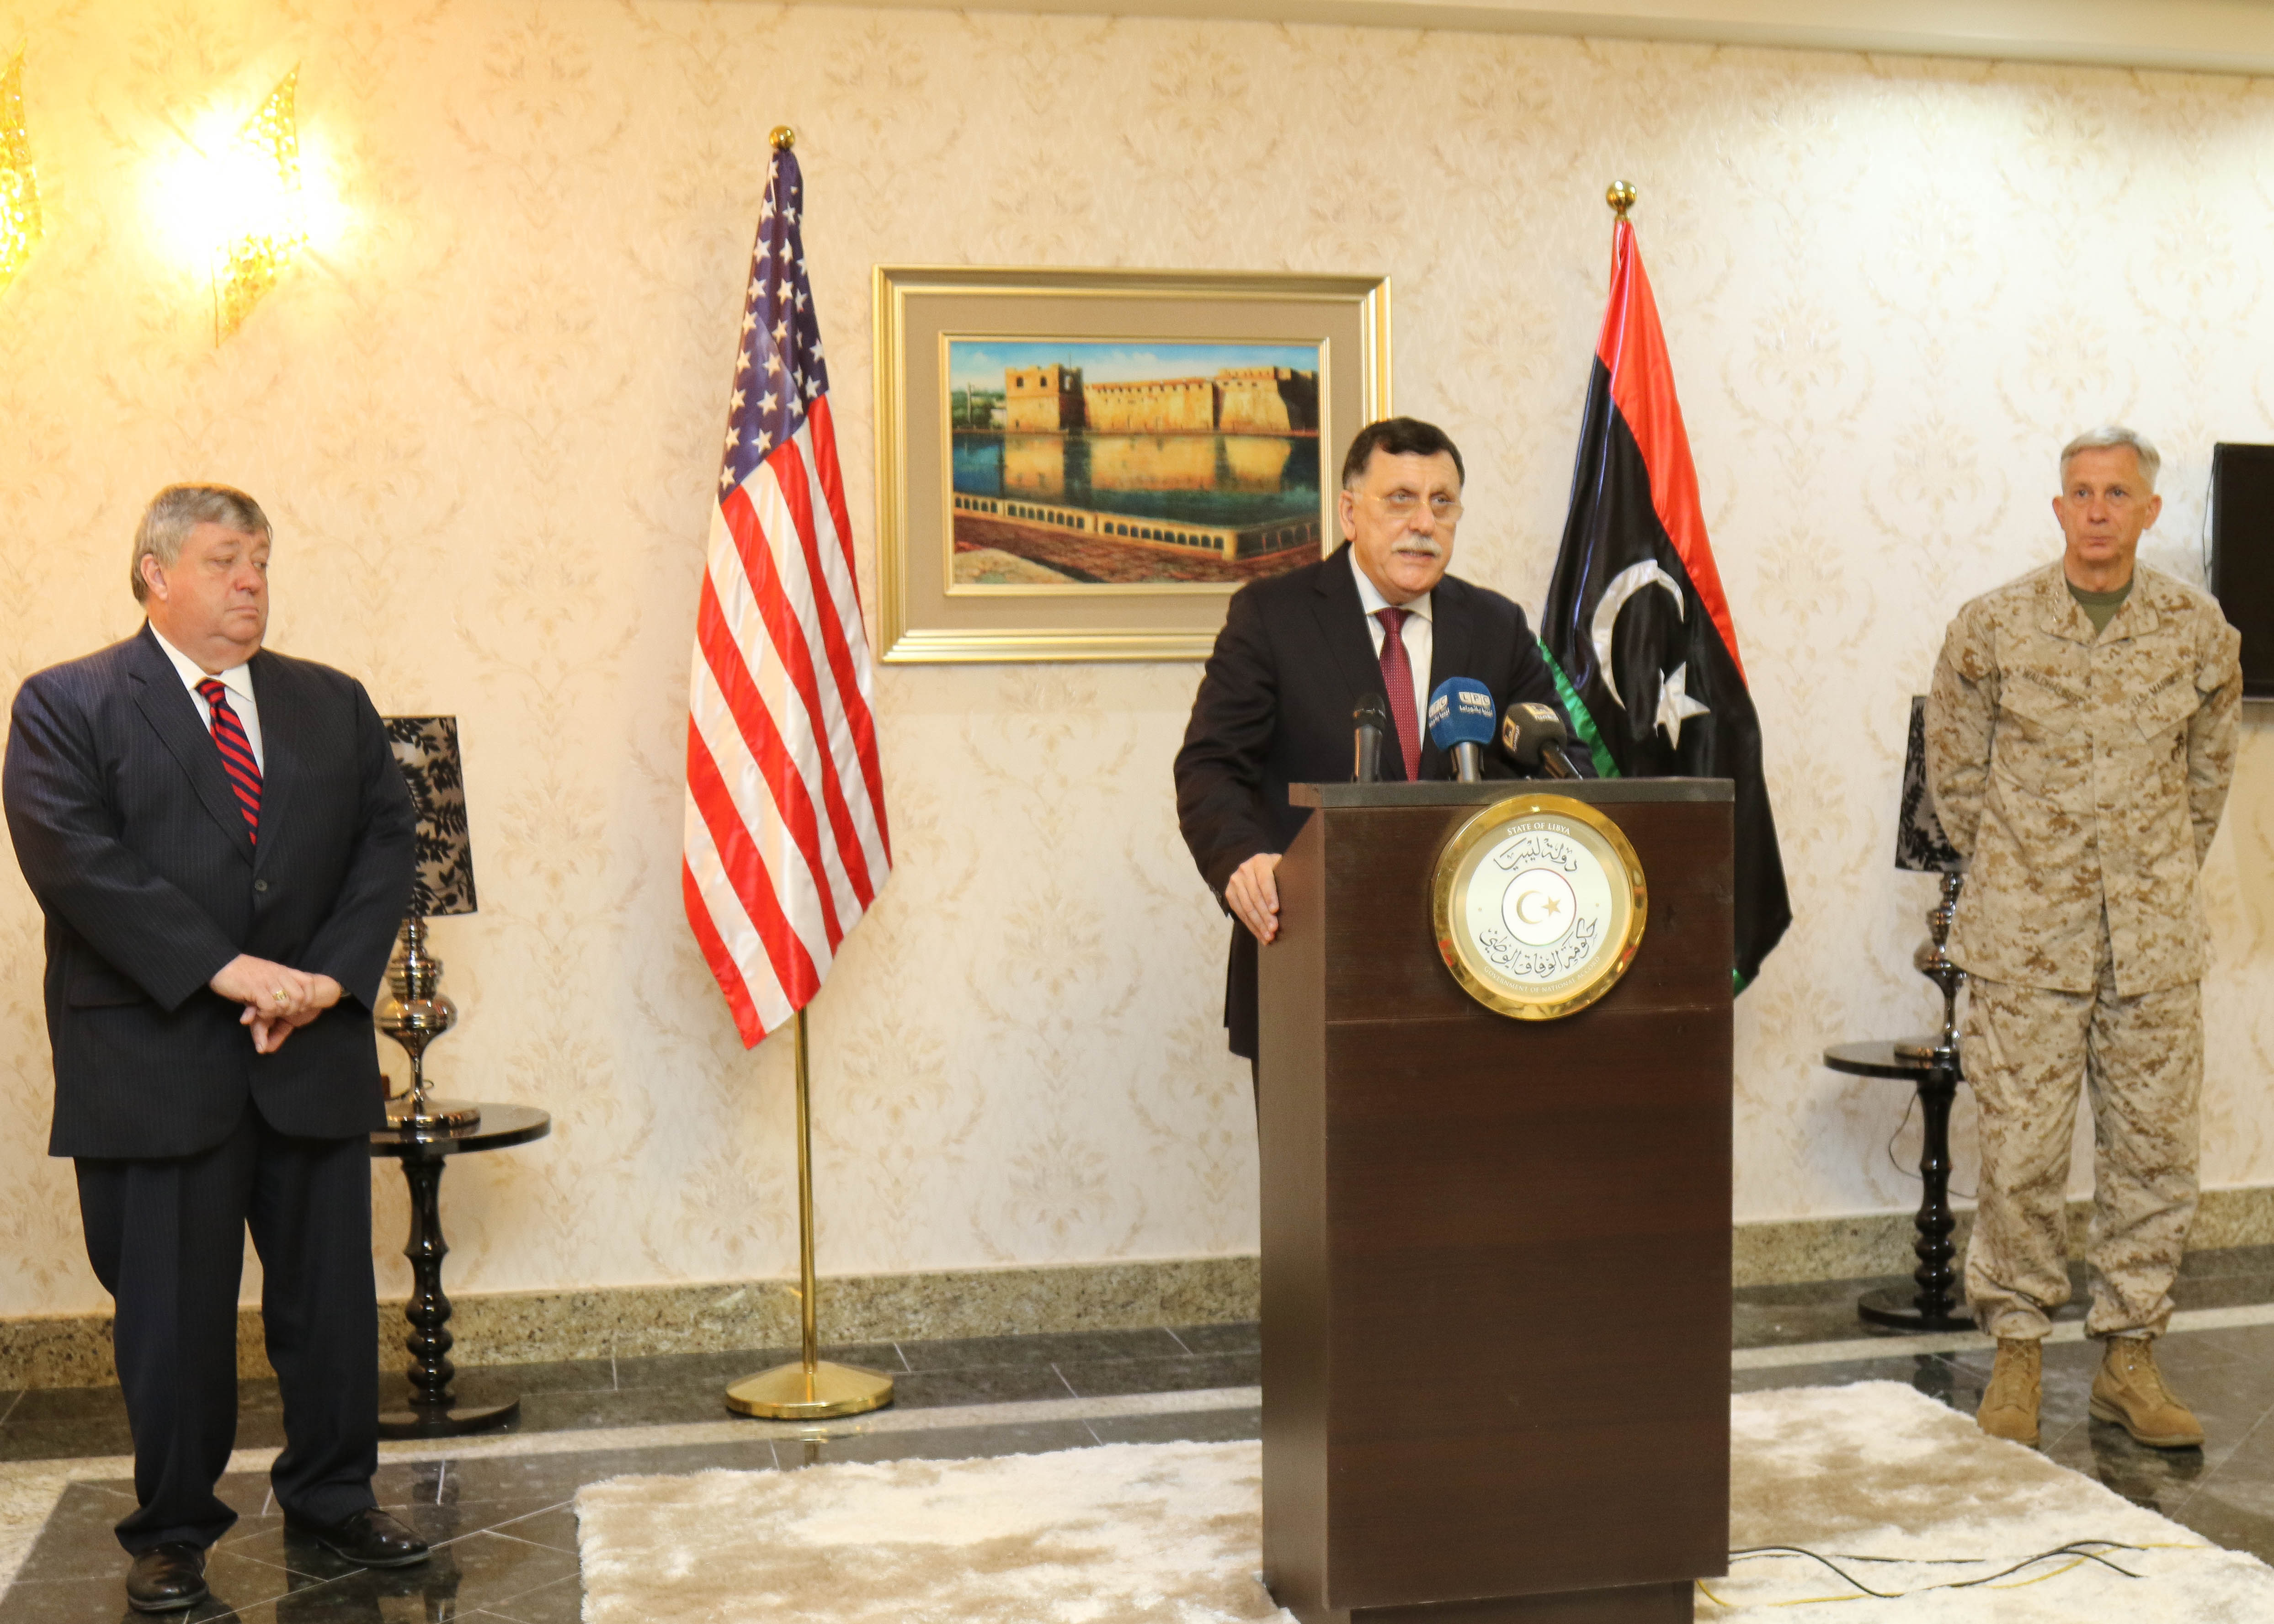 The Prime Minister of Libya's Unity Government Fayez al -Sarraj held a media engagement along with U.S. Marine Corps Gen. Thomas D. Waldhauser, Commander, U.S. Africa Command (USAFRICOM), and Amb. Peter Bodde, U.S. Ambassador to Libya, during their visit to Tripoli, Libya May 23, 2017. This marks the first time a a high ranking U.S. military official has been in Libya since 2014.